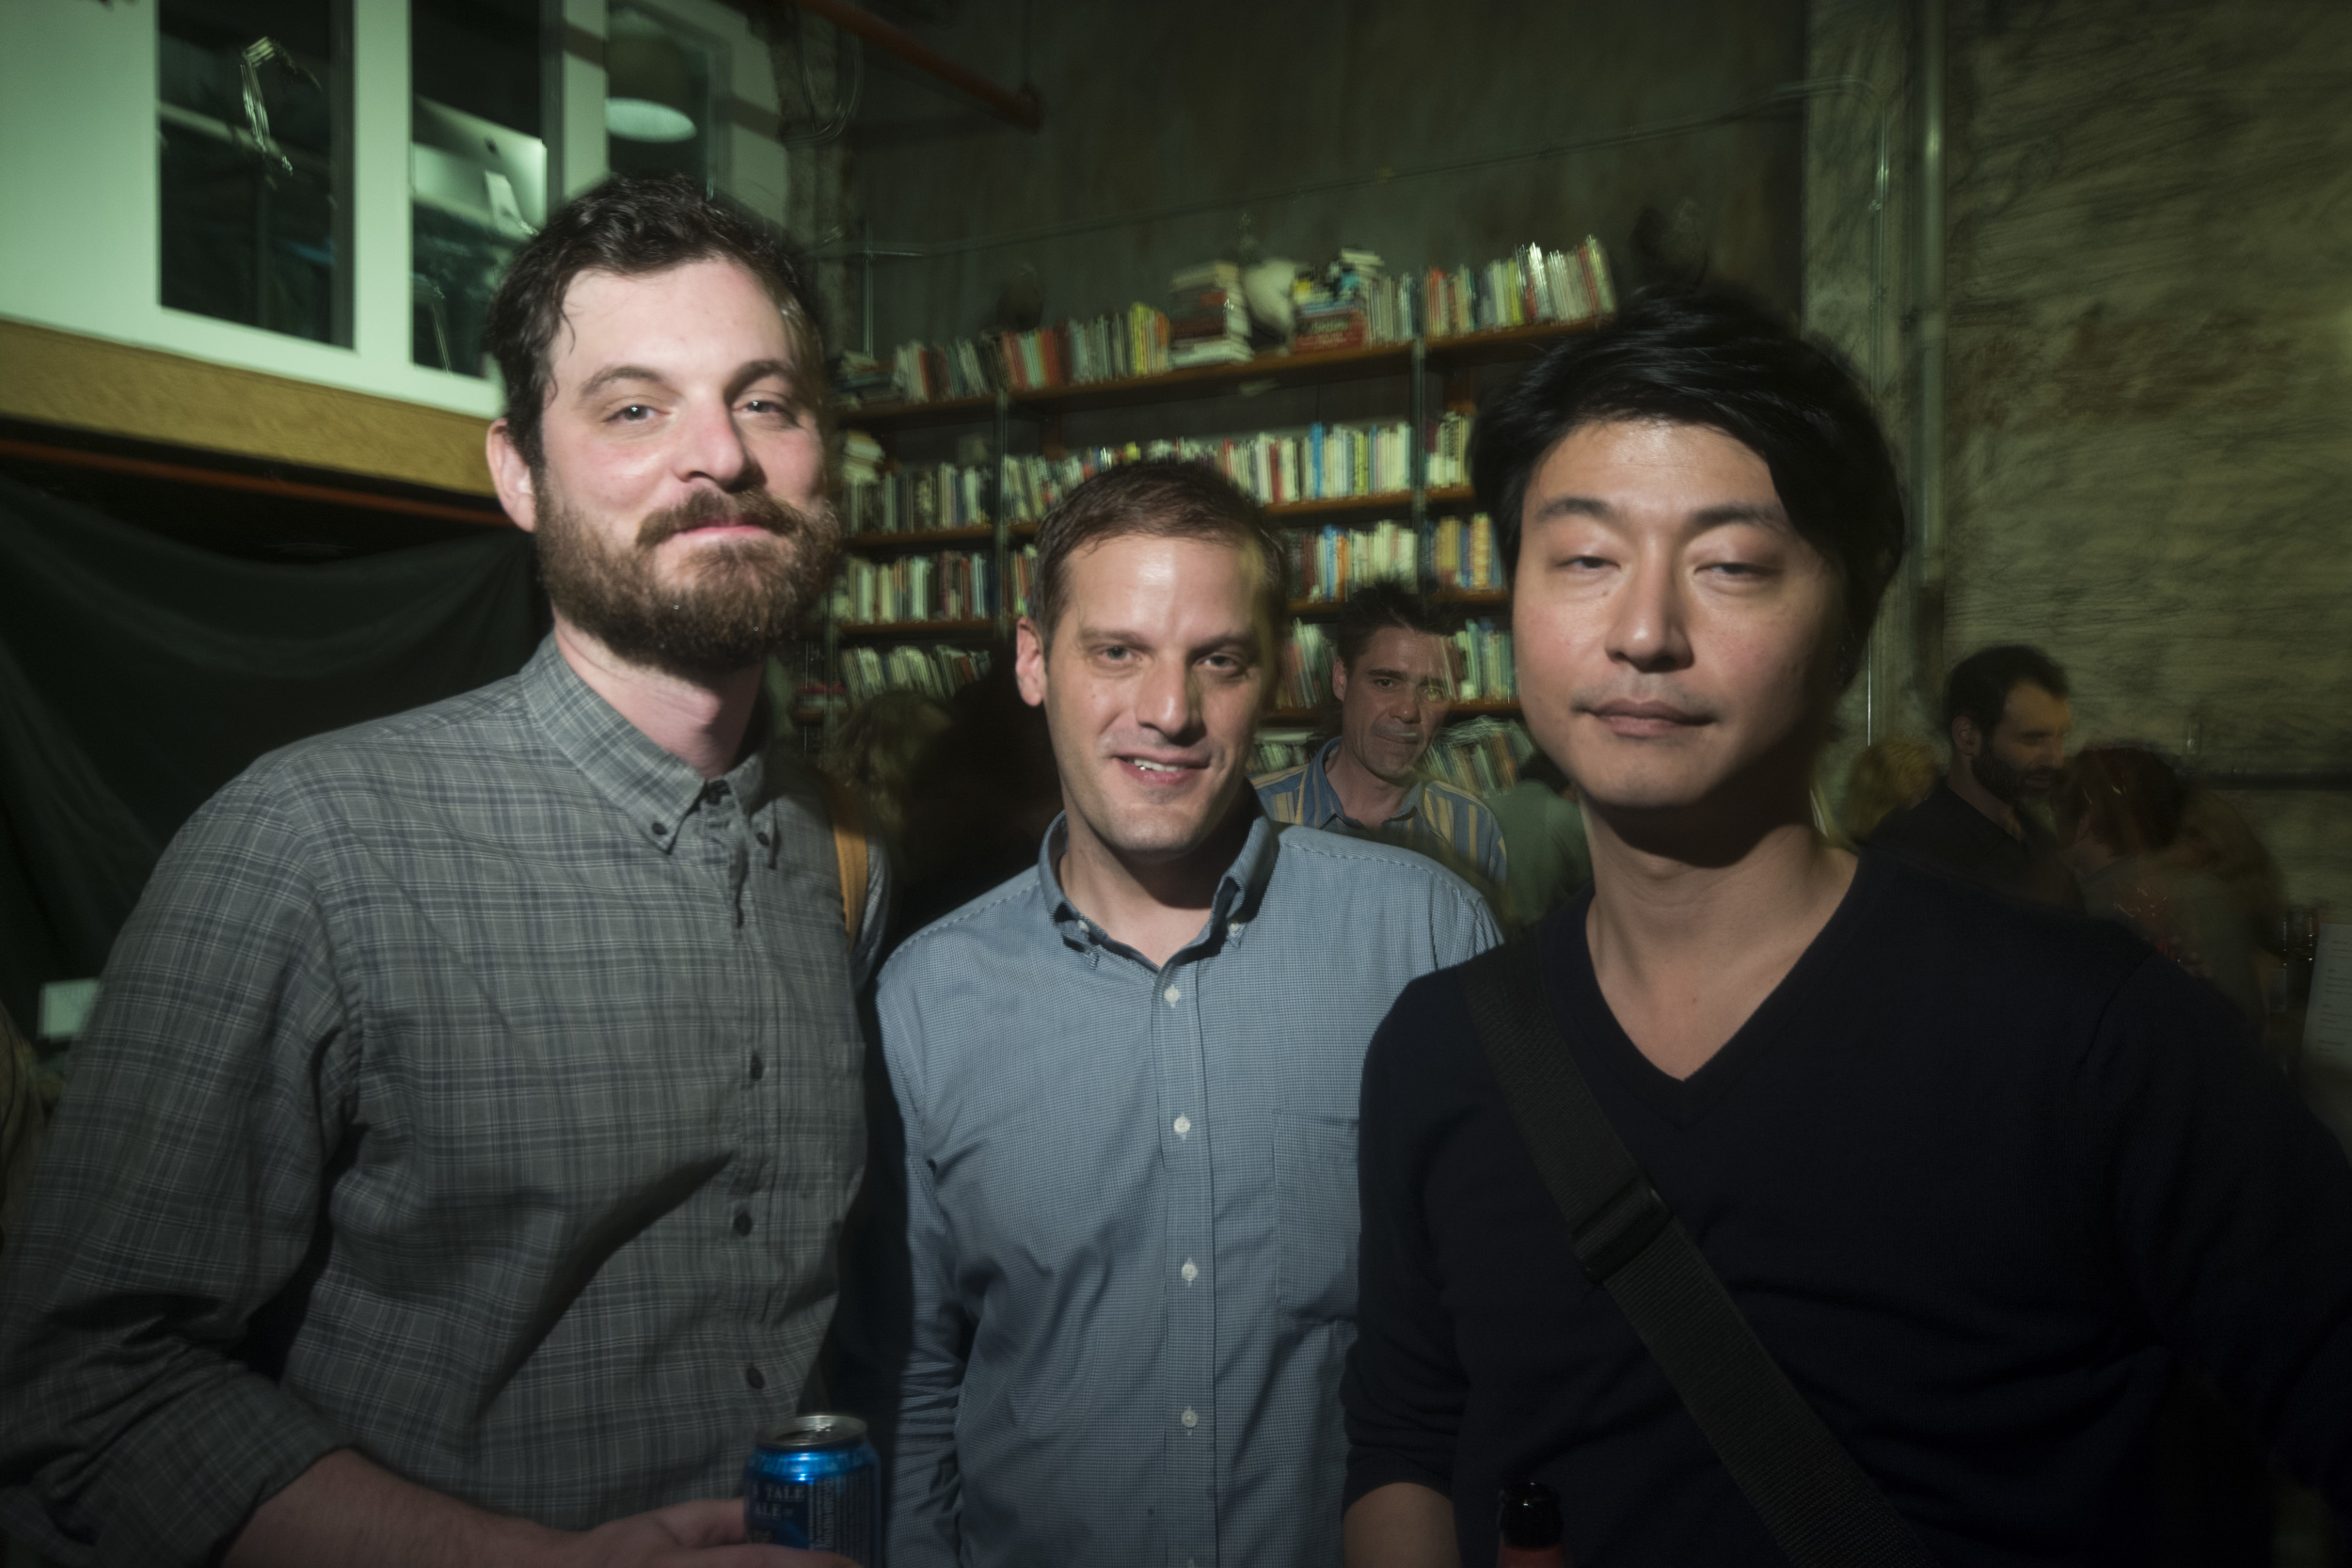 Oliver Sharpe, Josh Leeman and Lawrence Kim